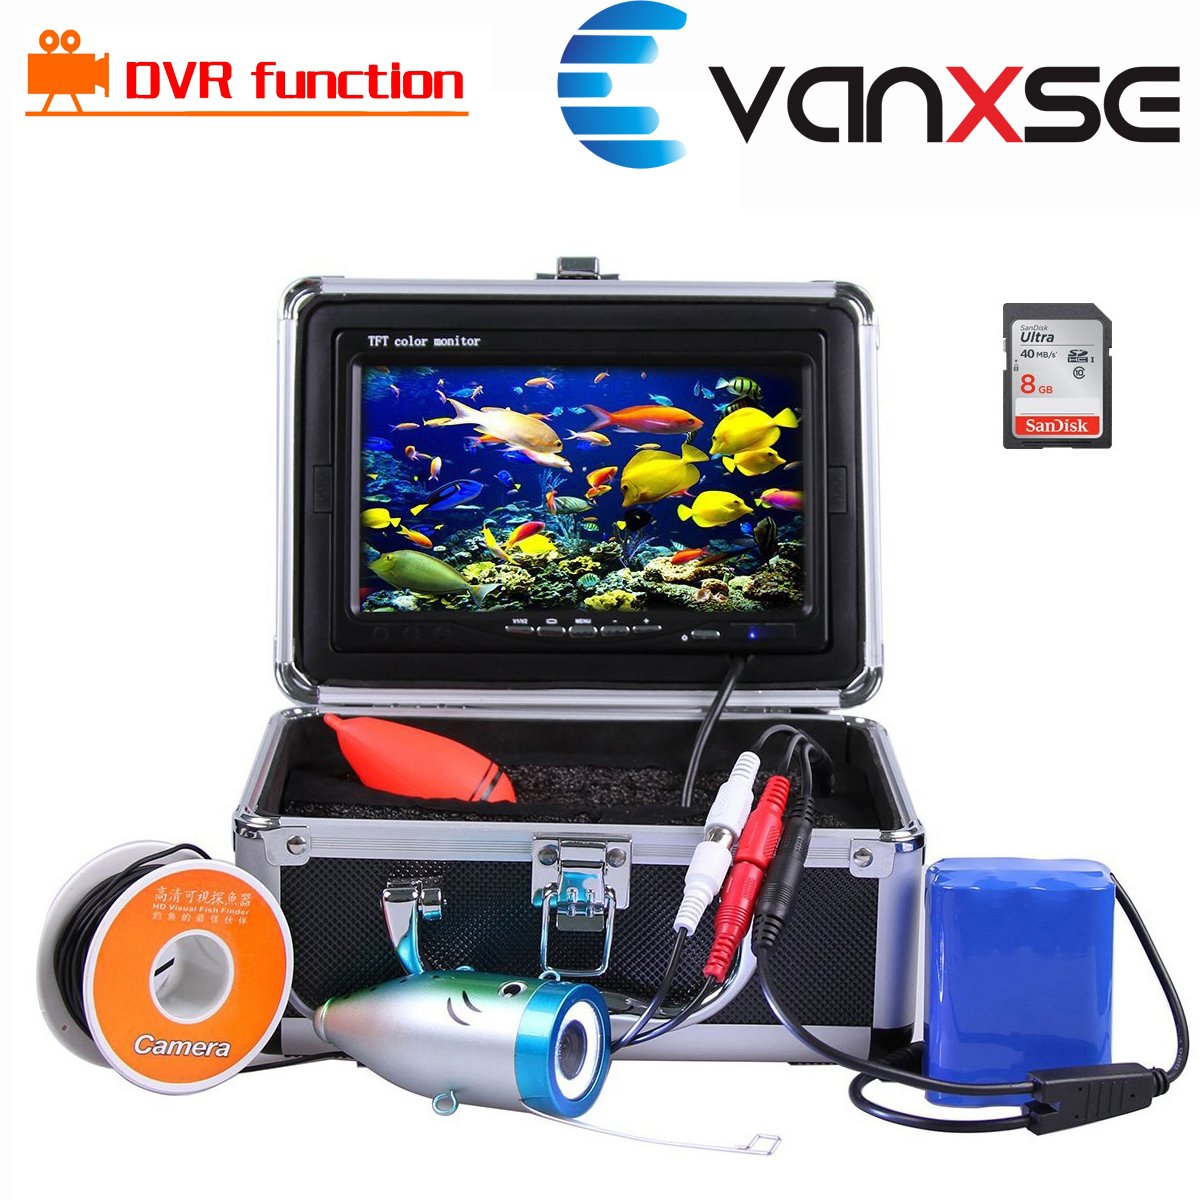 Vanxse Underwater Fish Finder With Video Recorder DVR Function Professional Fishing Video Camera 7'' TFT Color LCD HD Monitor 1000tvl CCD 50M Cable Length 8GB SD Card by Vanxse